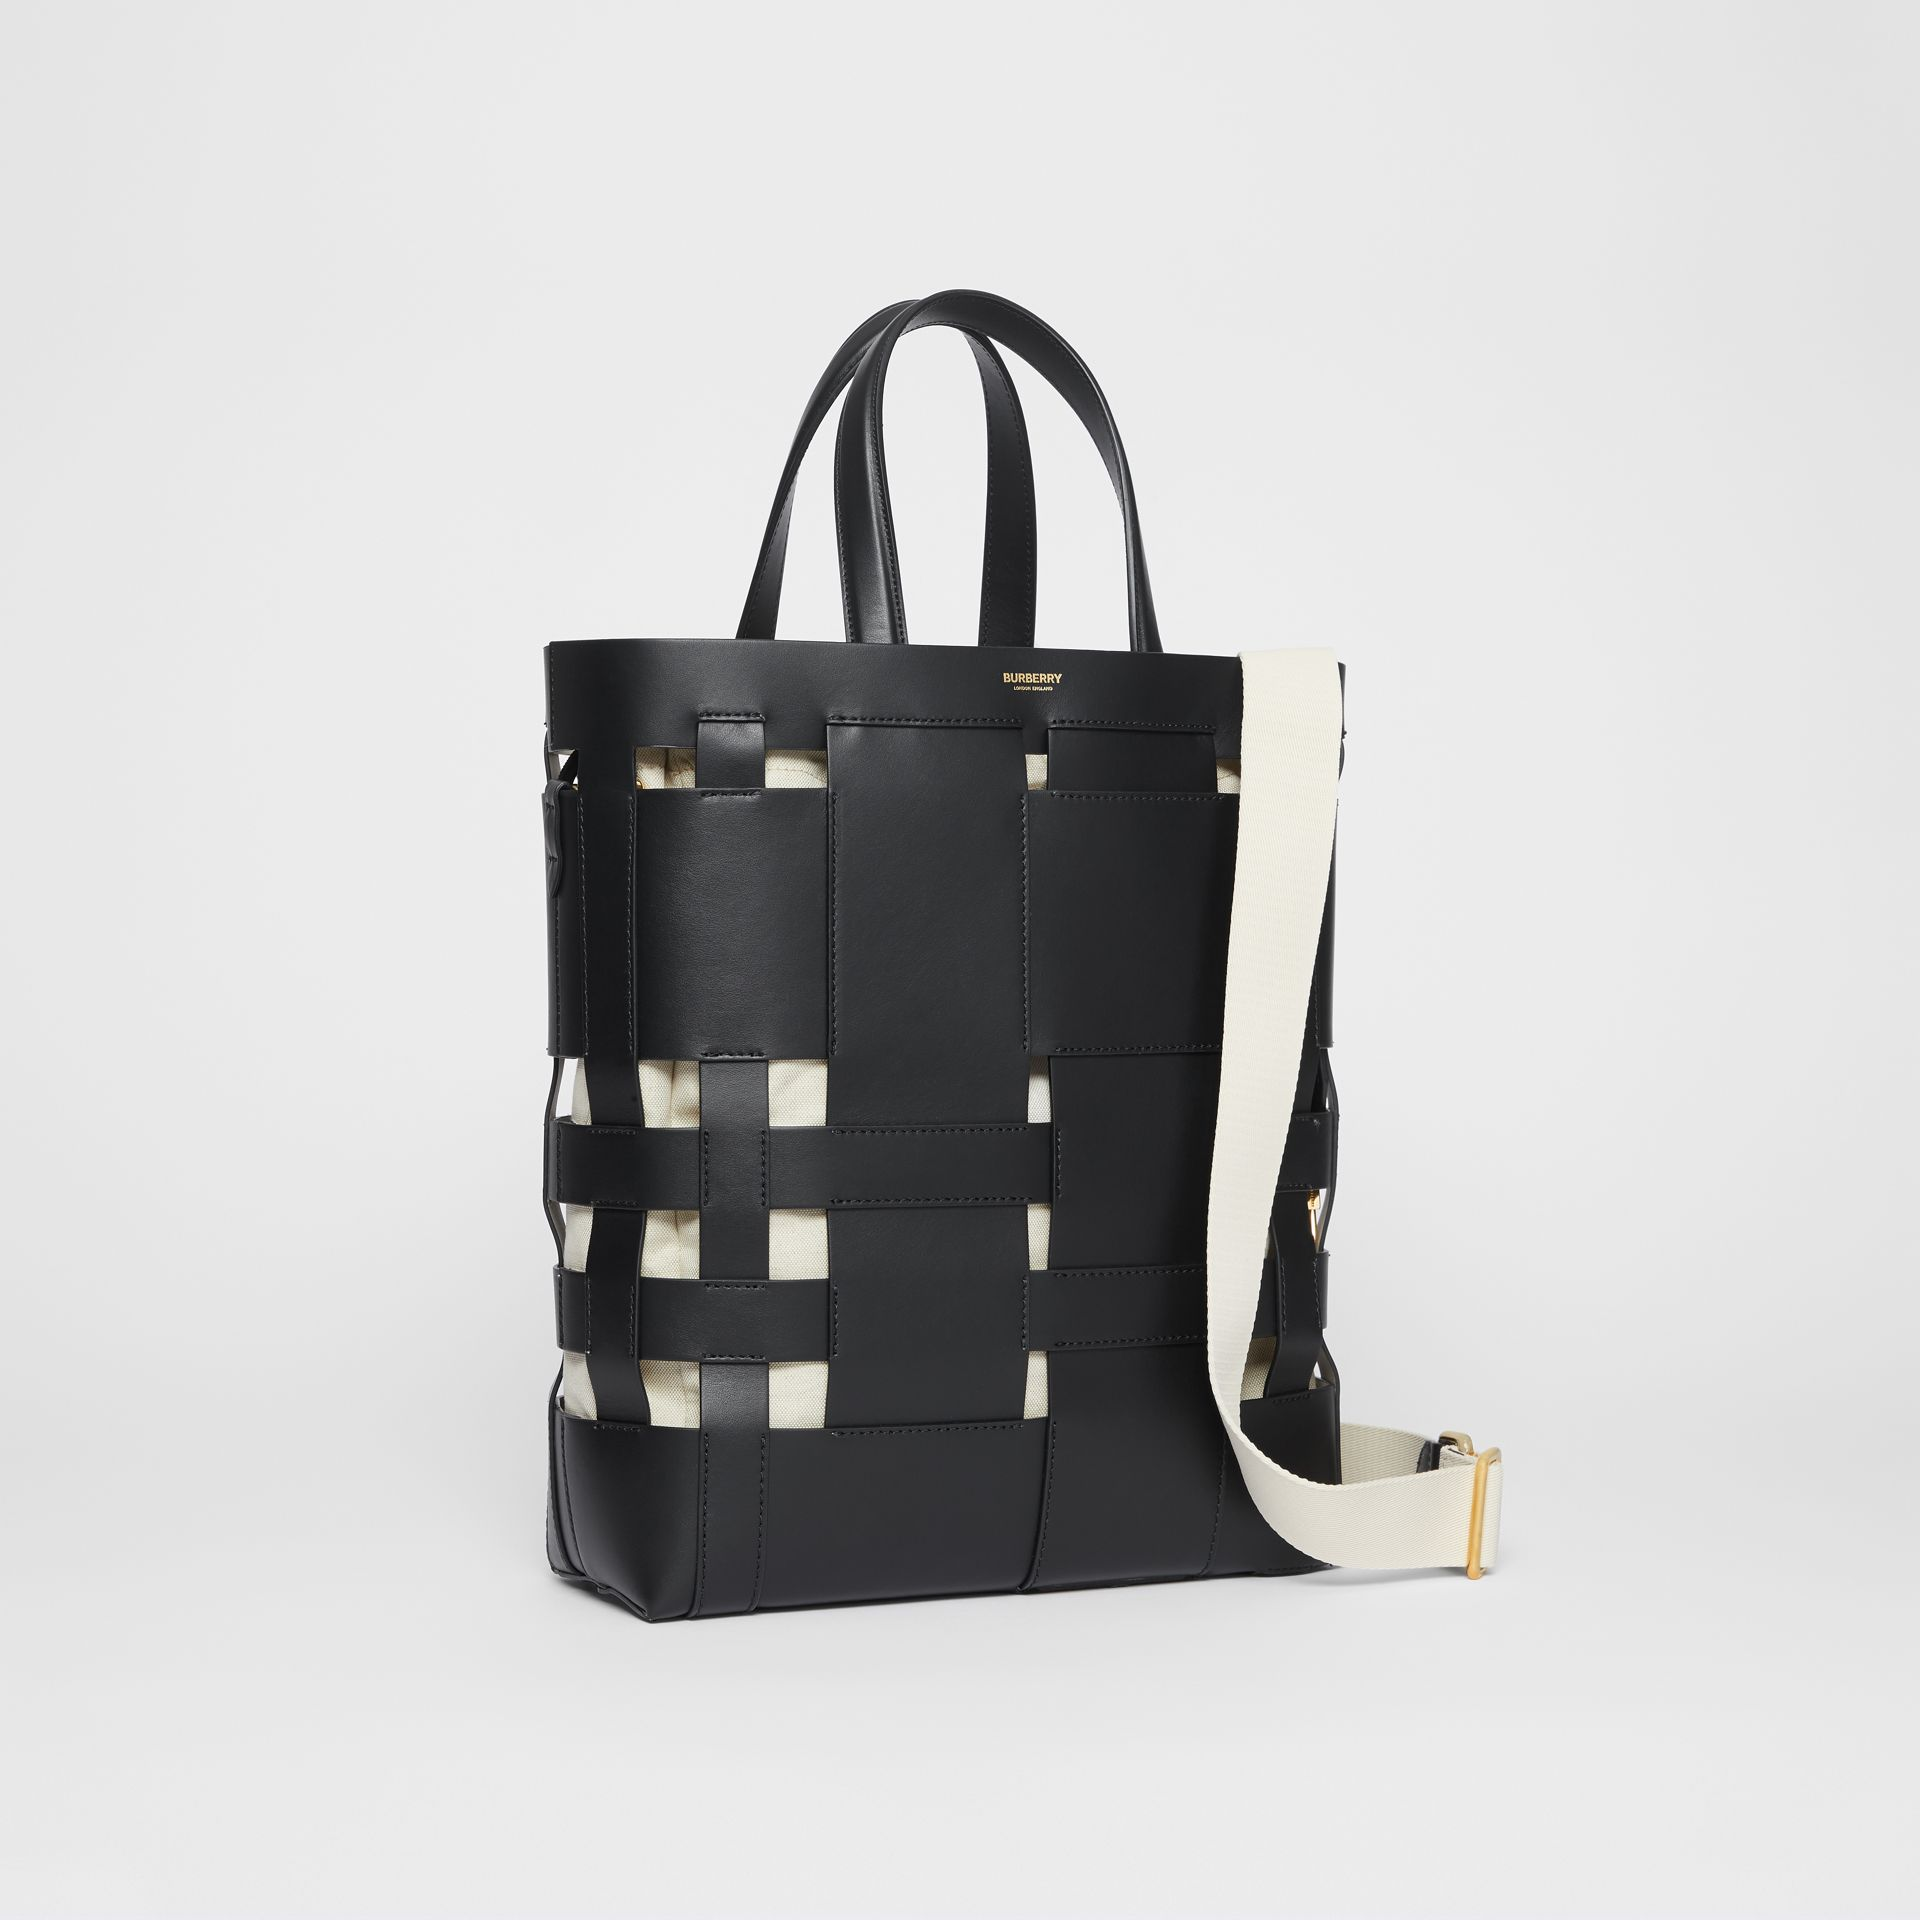 Medium Leather Foster Tote in Black - Women | Burberry - gallery image 6